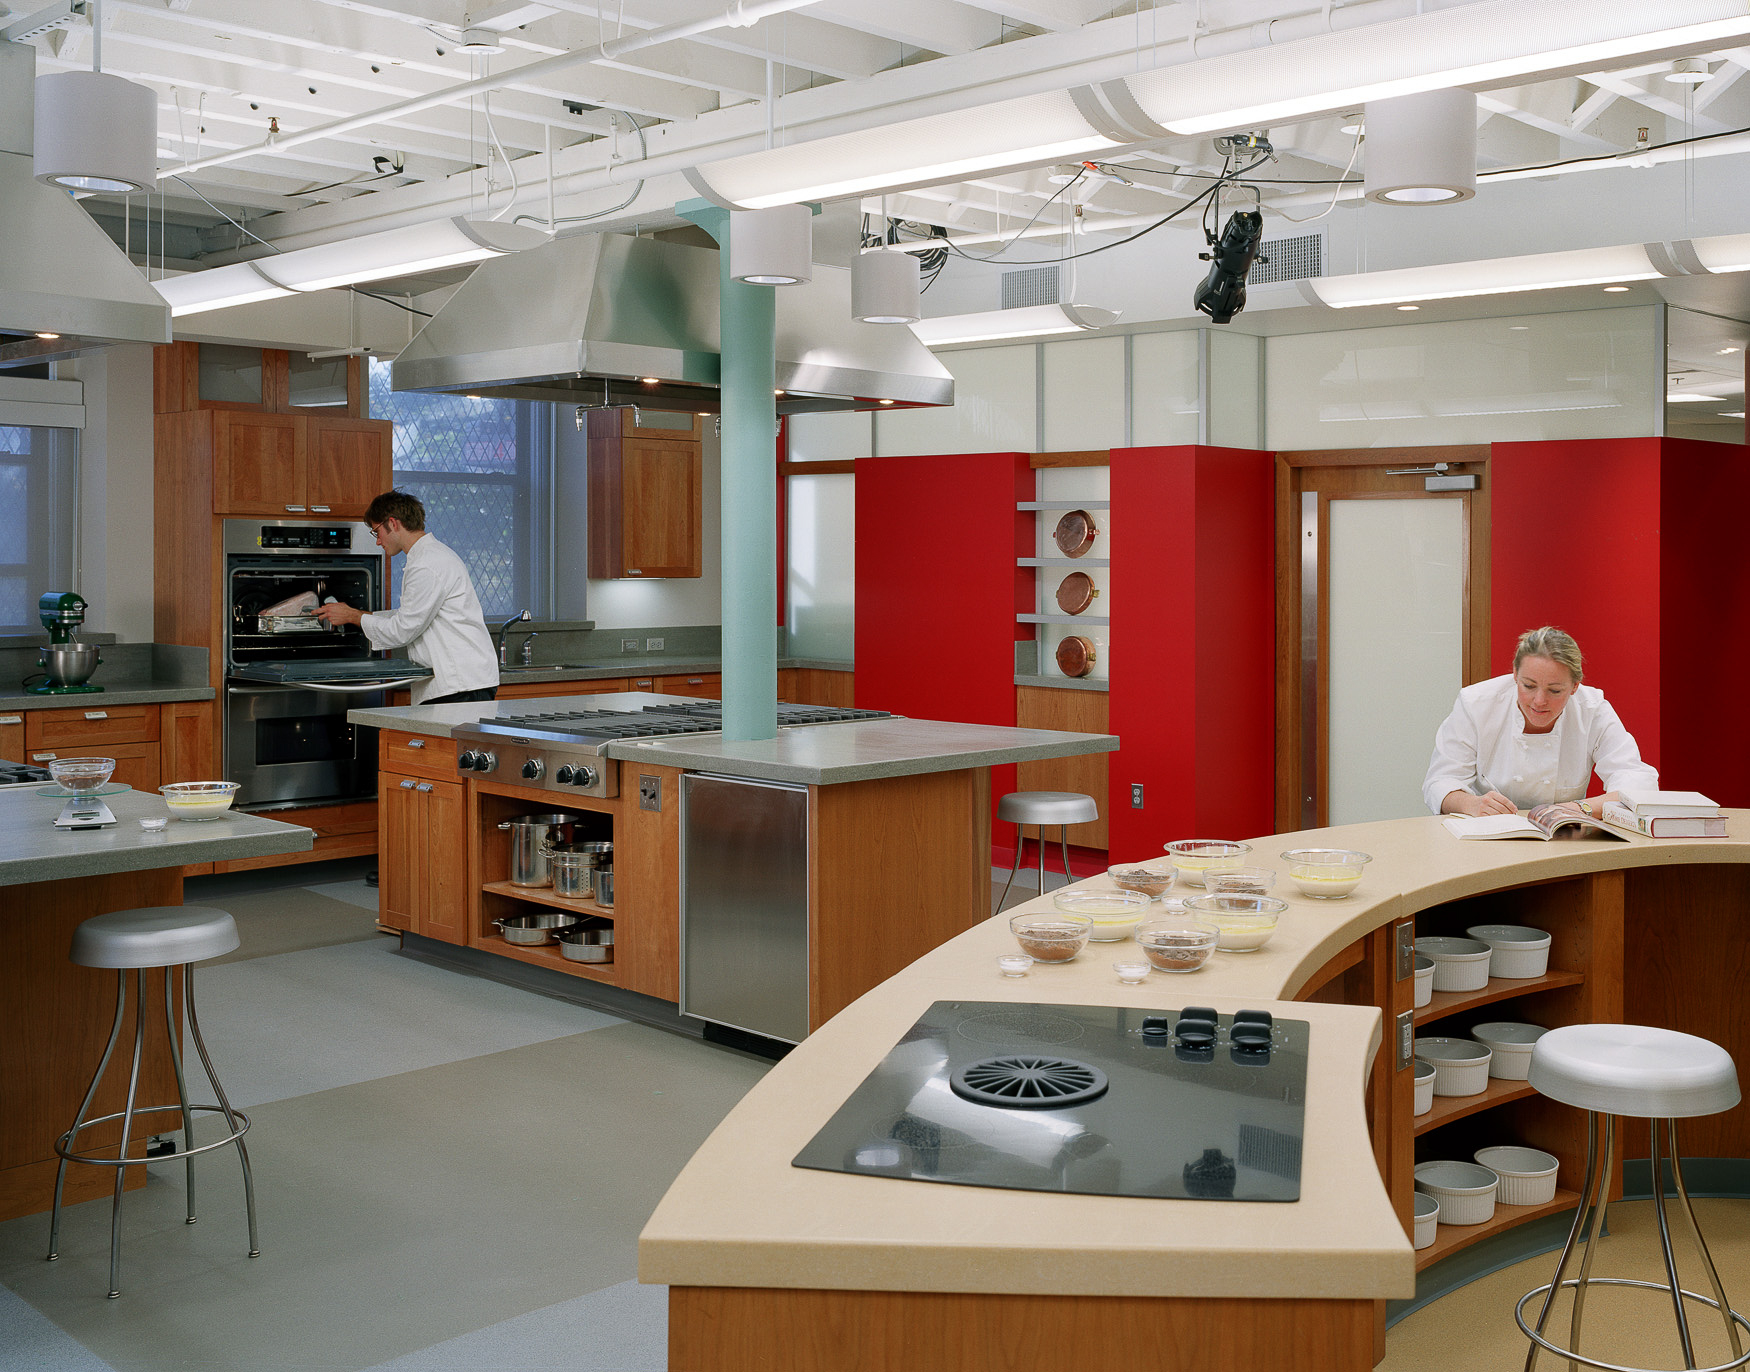 Americas-Test-Kitchen-Corian-Countertops-Sterling-Surfaces-1.jpg